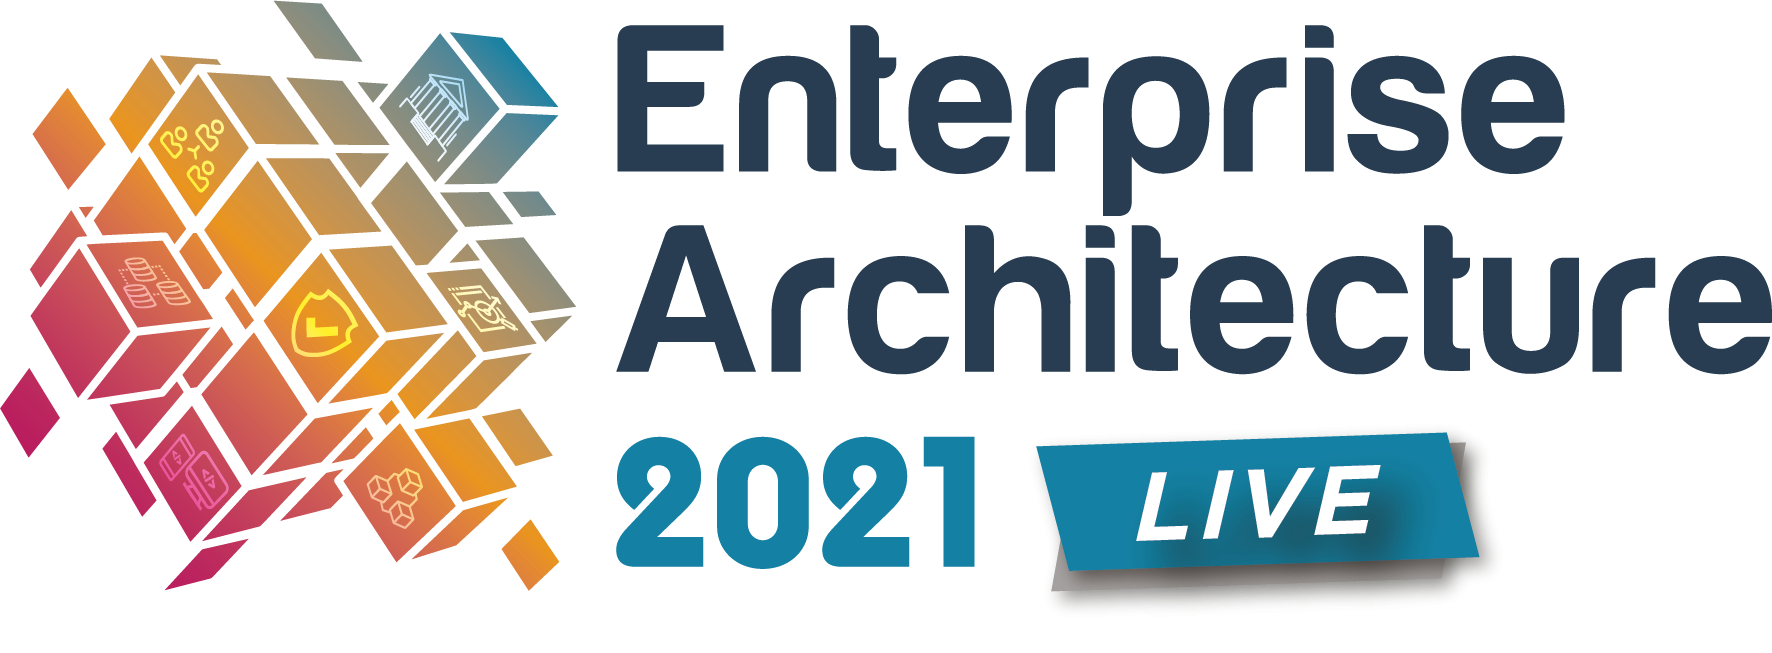 Enterprise Architecture Online 2021